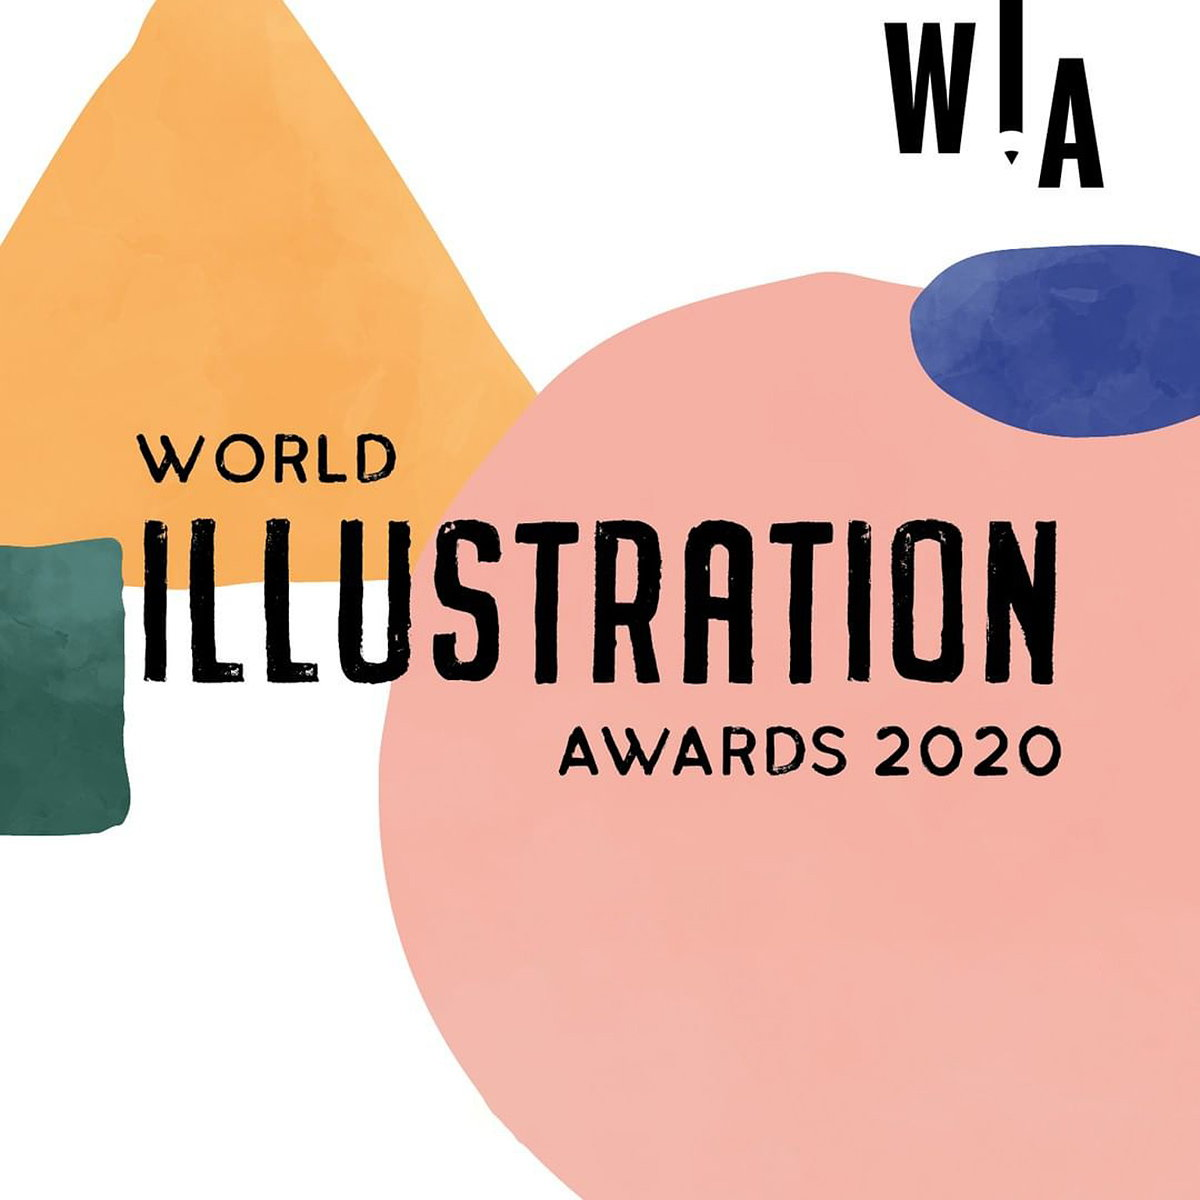 World Illustration Awards 2020 Call for Entries Now Open